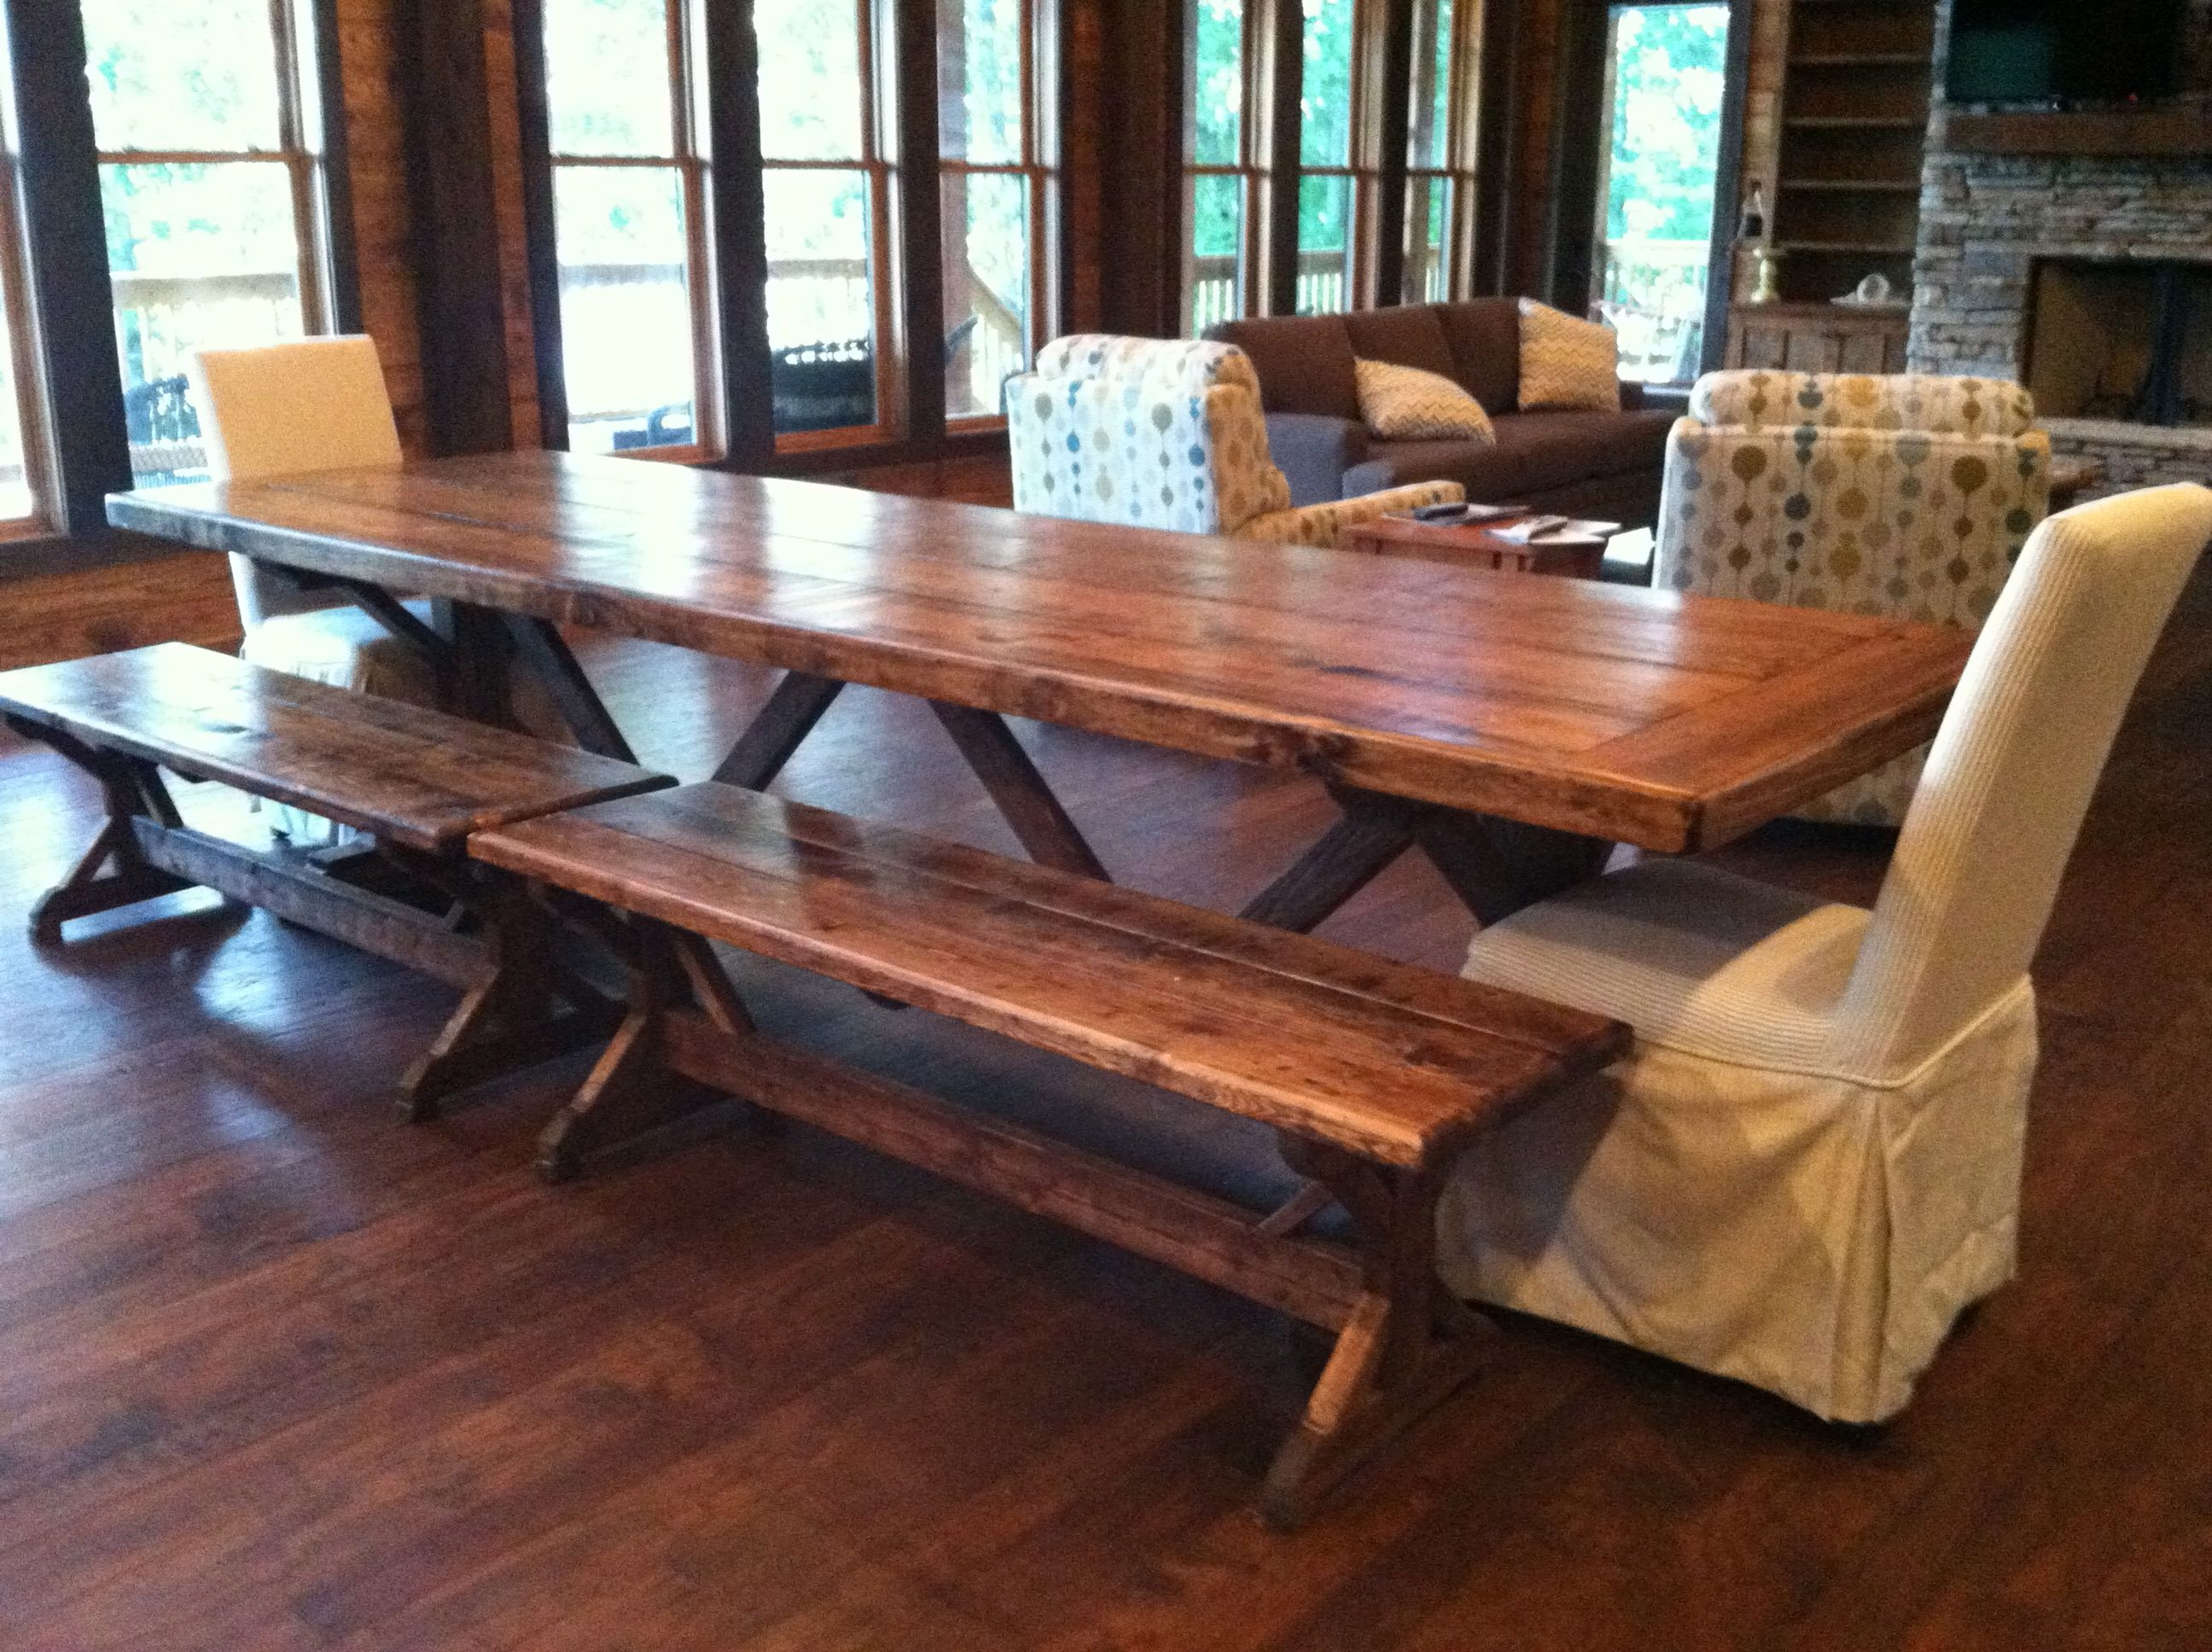 10 Foot Farm Table With Two 5 Foot Benches For A New Home On Lake